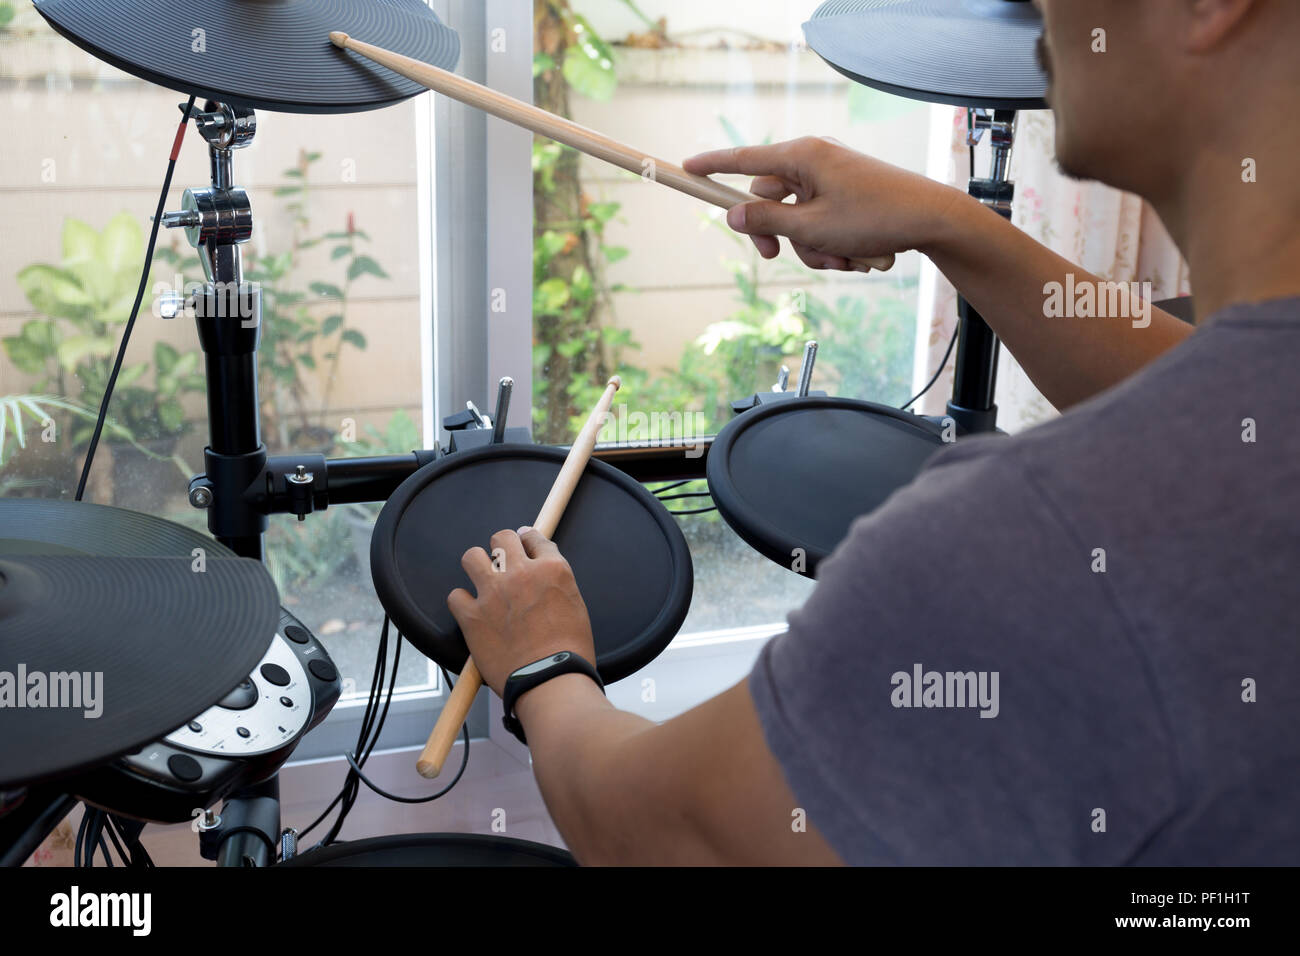 Man's rehearsal playing electronic drums - Stock Image